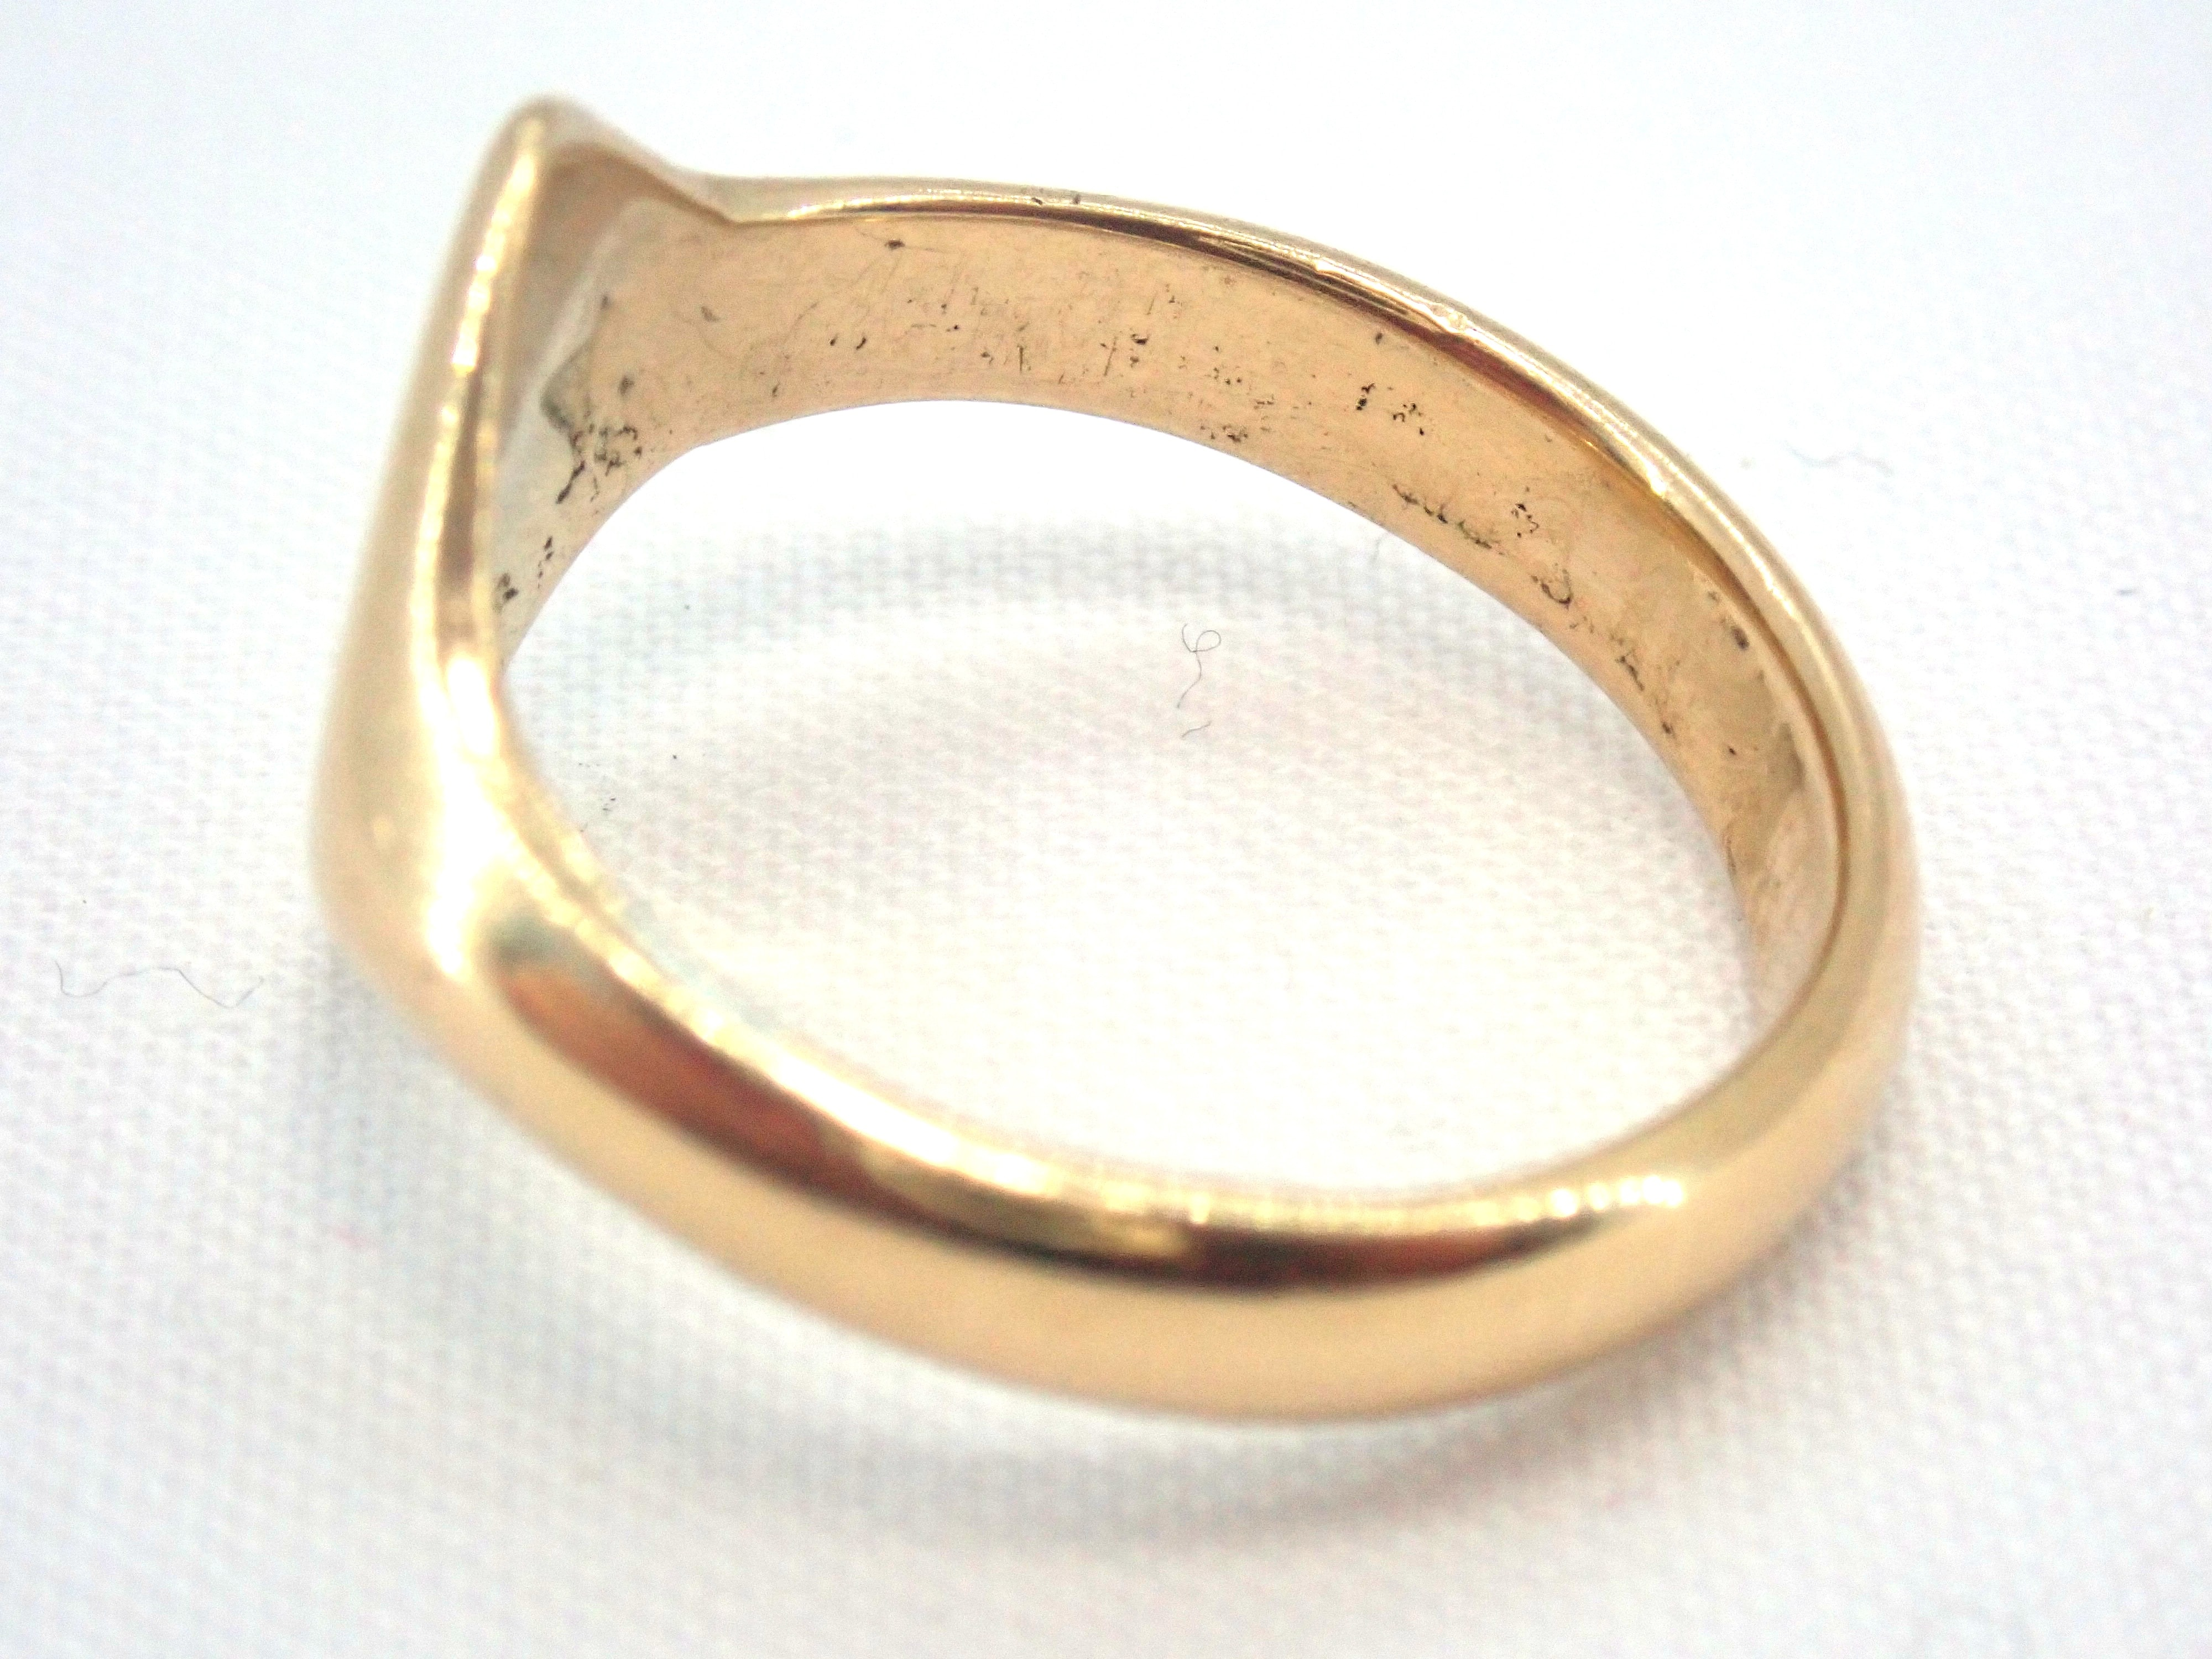 AZZ00728 1 - Vintage!! Solid 18 carat Gold Diamond Shaped Signet Ring - Size M - 5.3gms #002